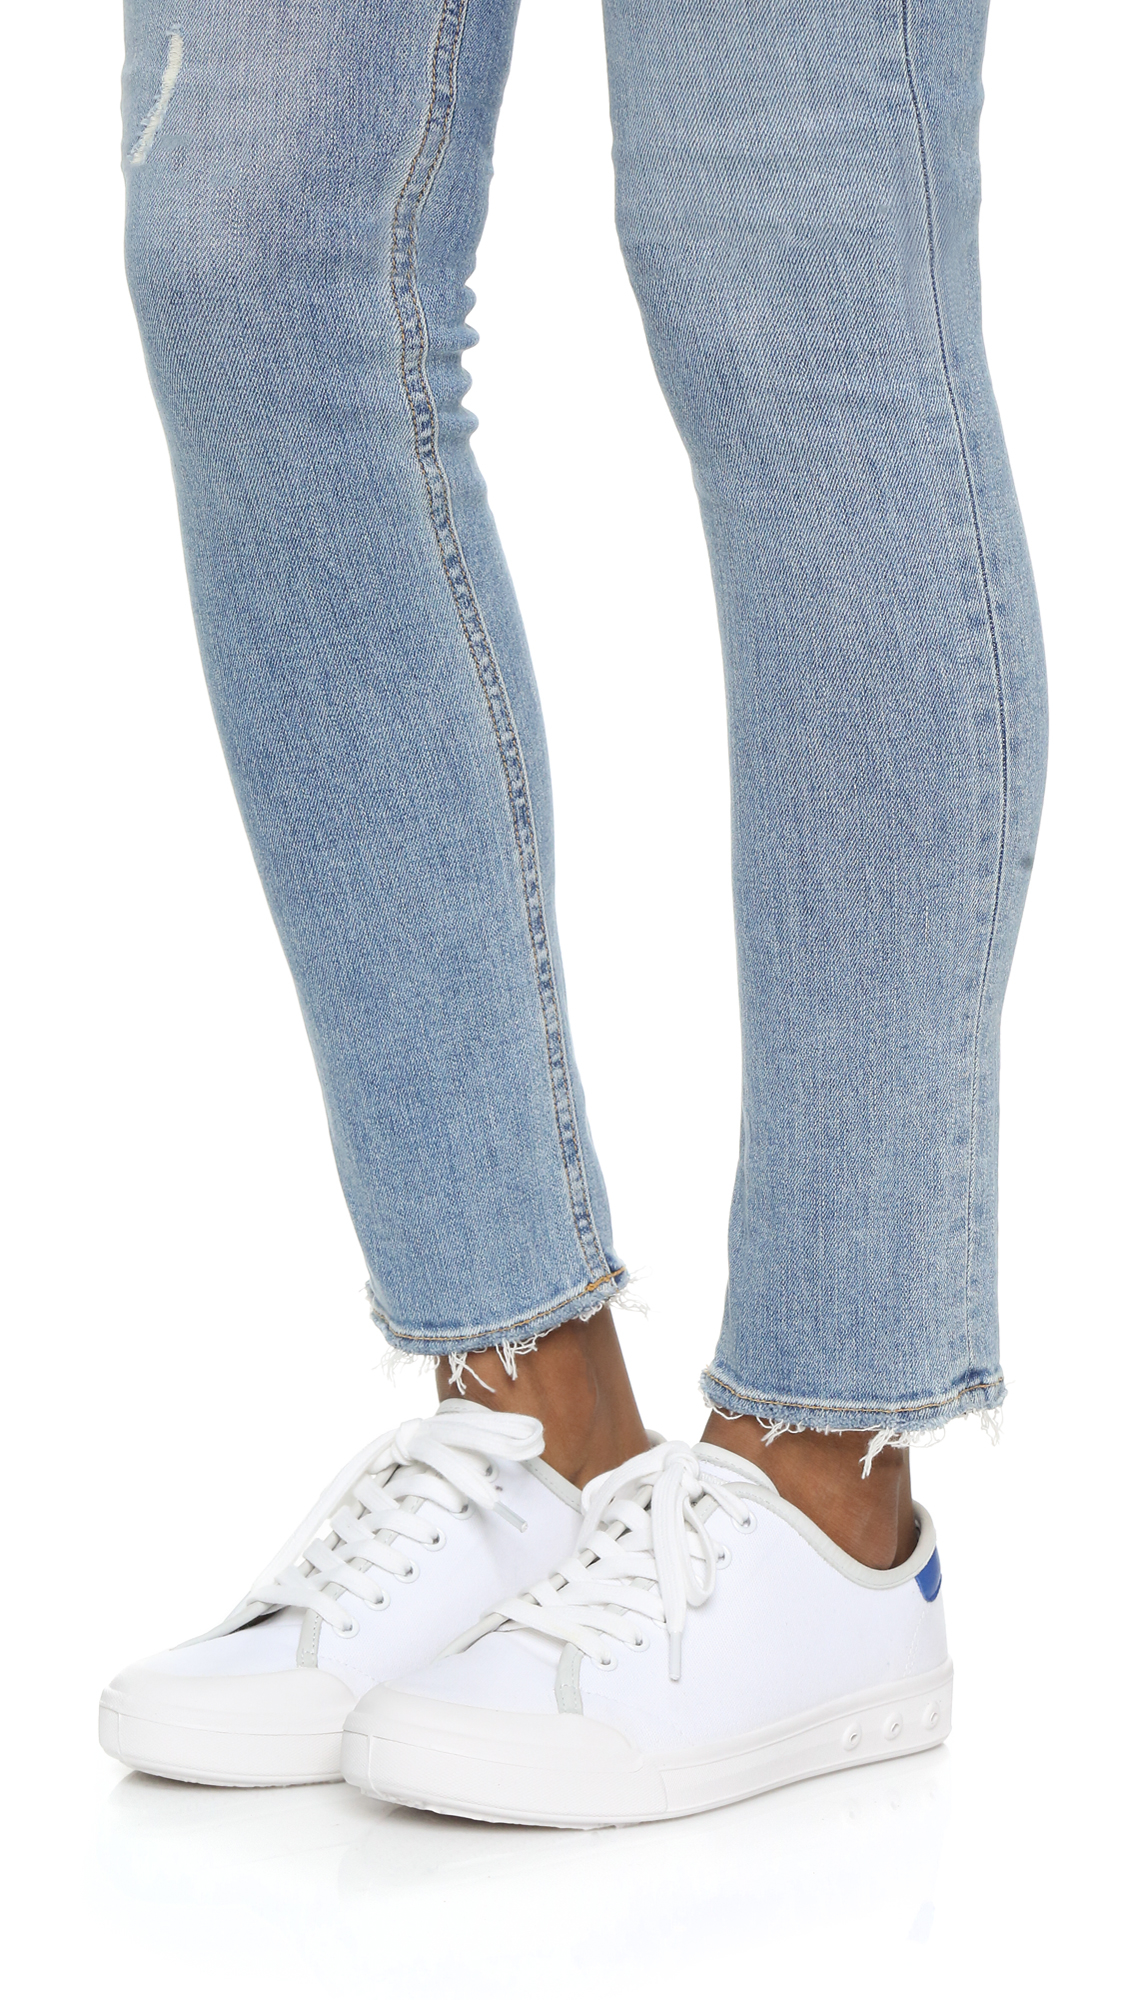 Image result wey dey for Rag & Bone Women's Standard Issue Lace Up